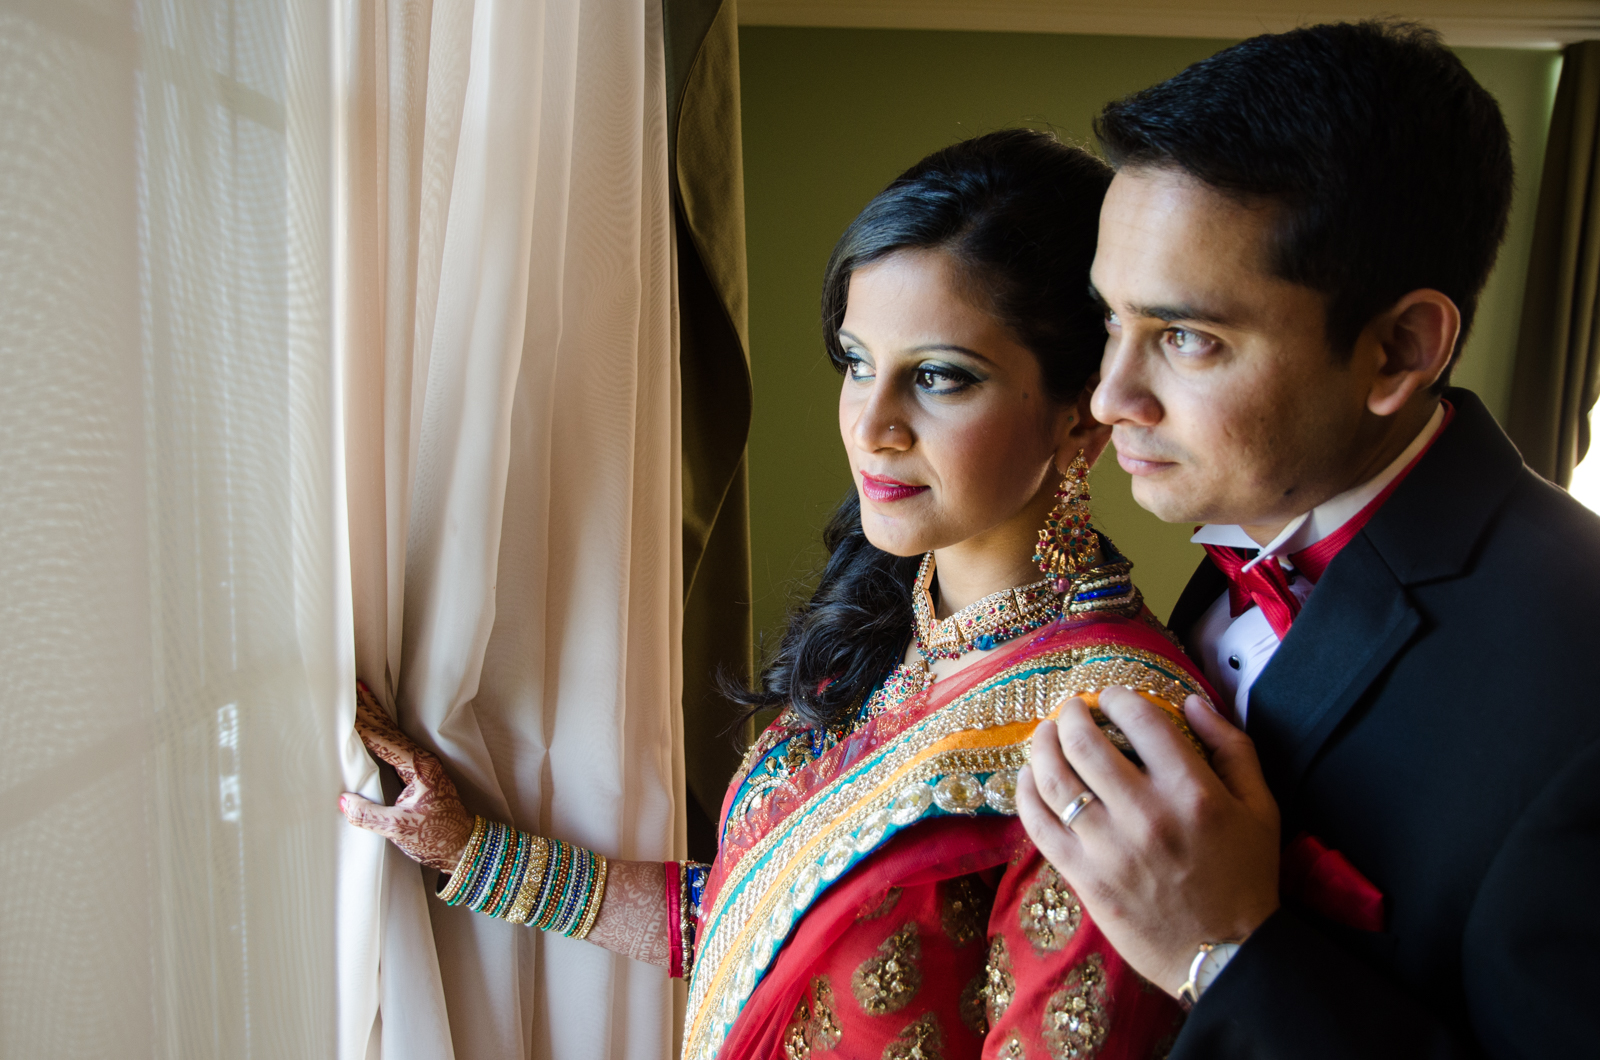 lake-success-village-club-muslim-wedding-portrait-njohnston-photography-www.njoh